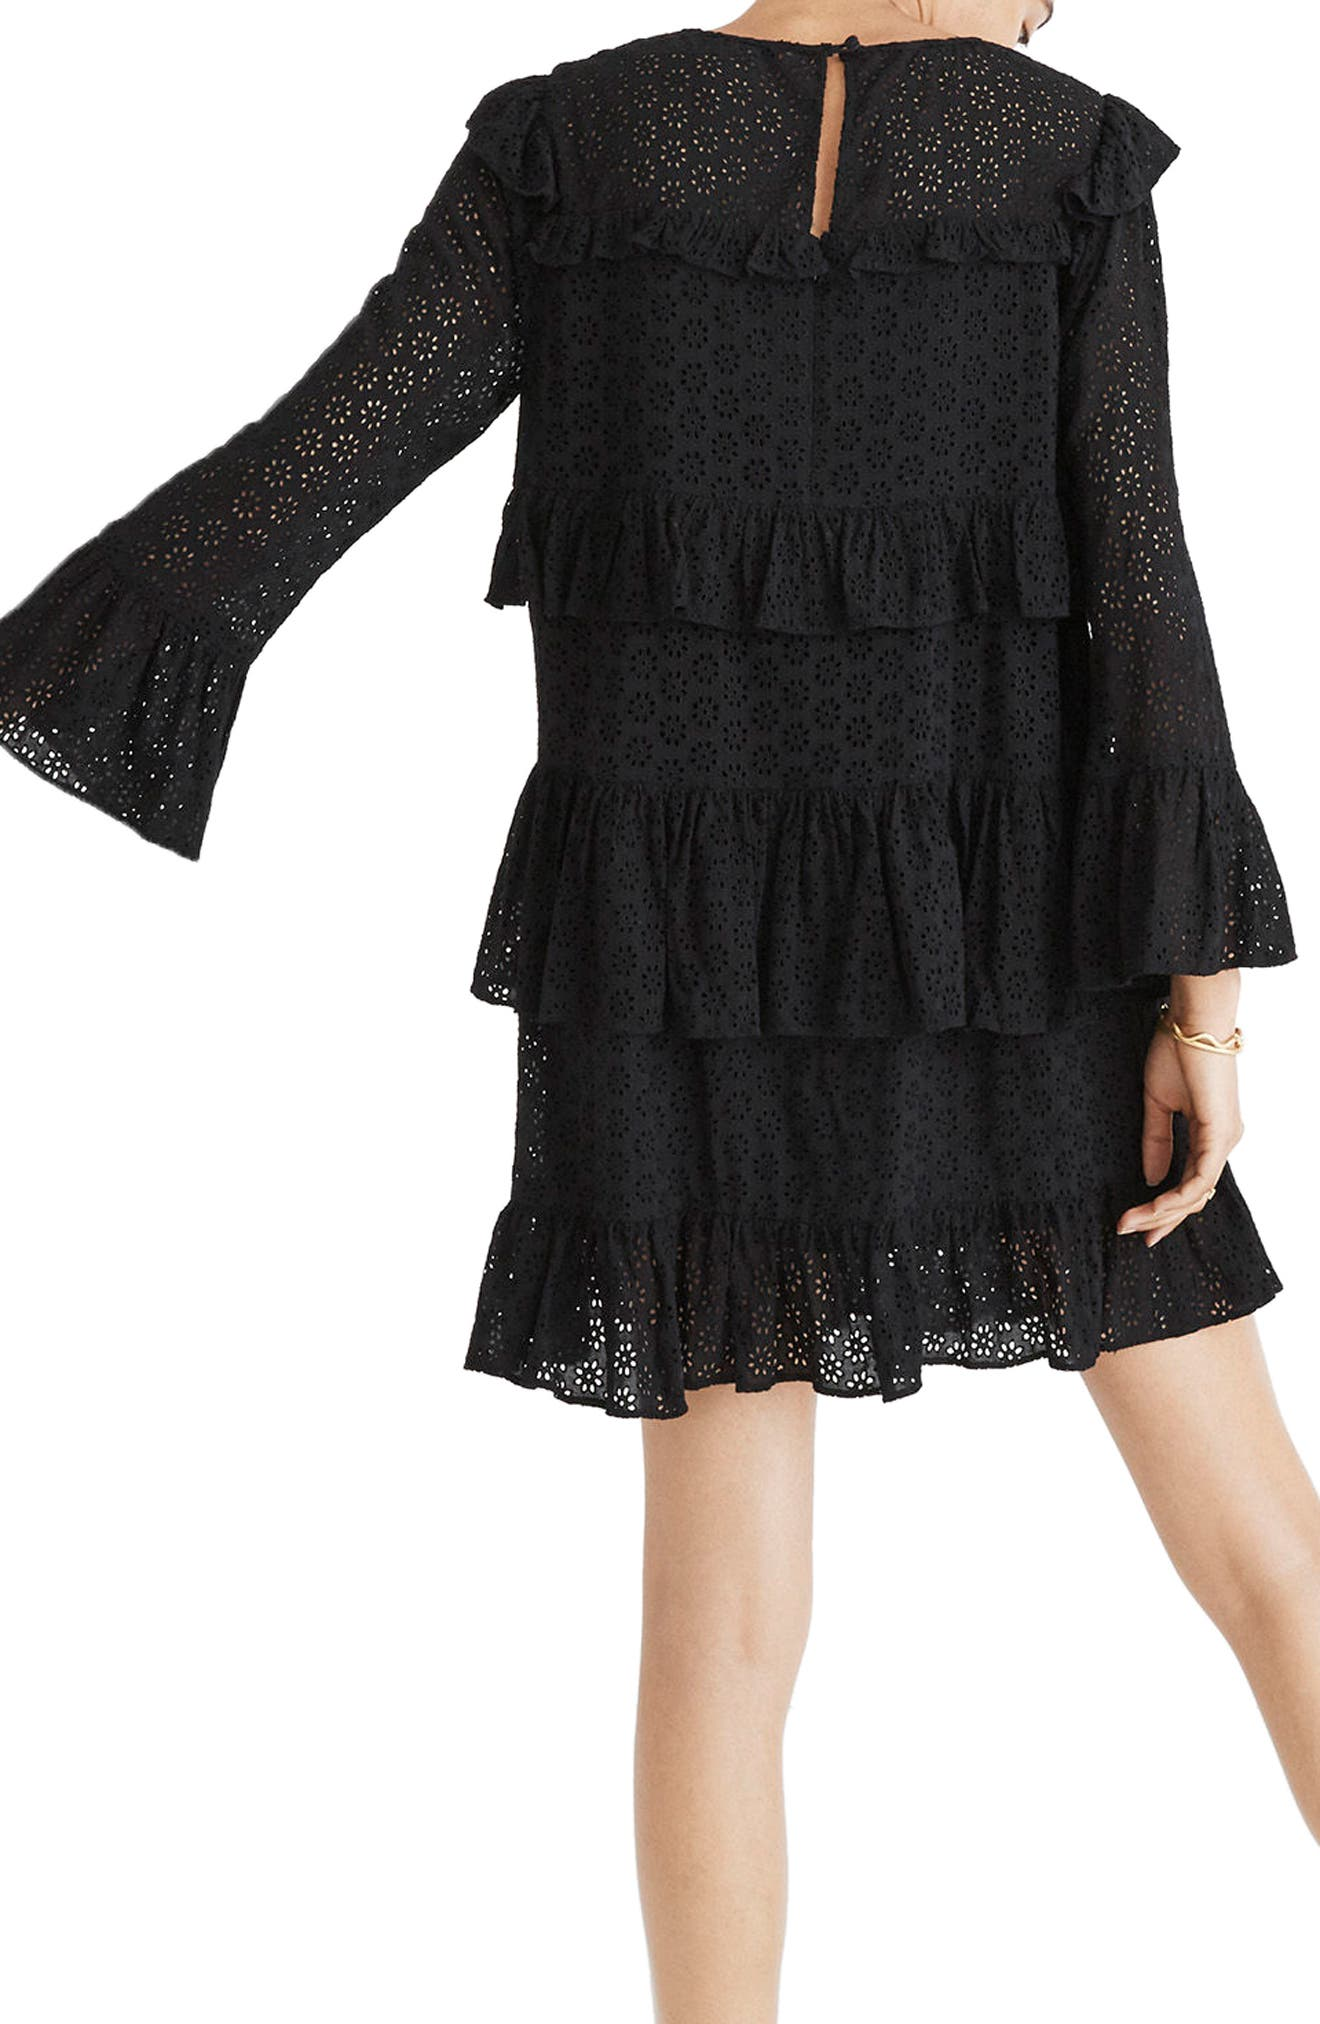 Waterlily Ruffle Eyelet Dress,                             Alternate thumbnail 2, color,                             001